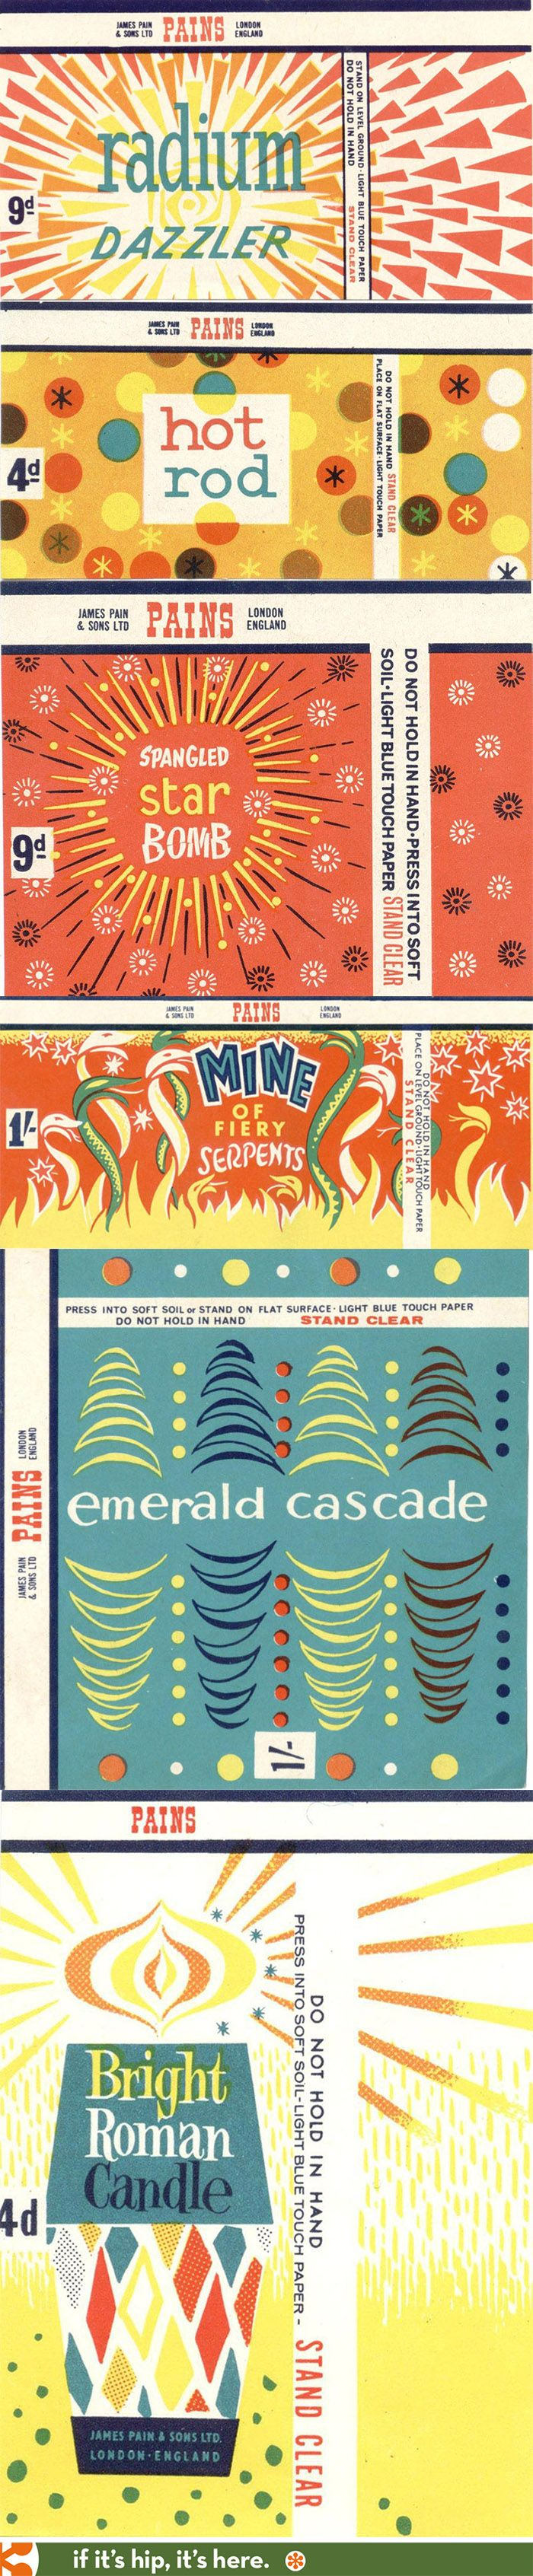 Vintage fireworks packaging from Pain's of England.